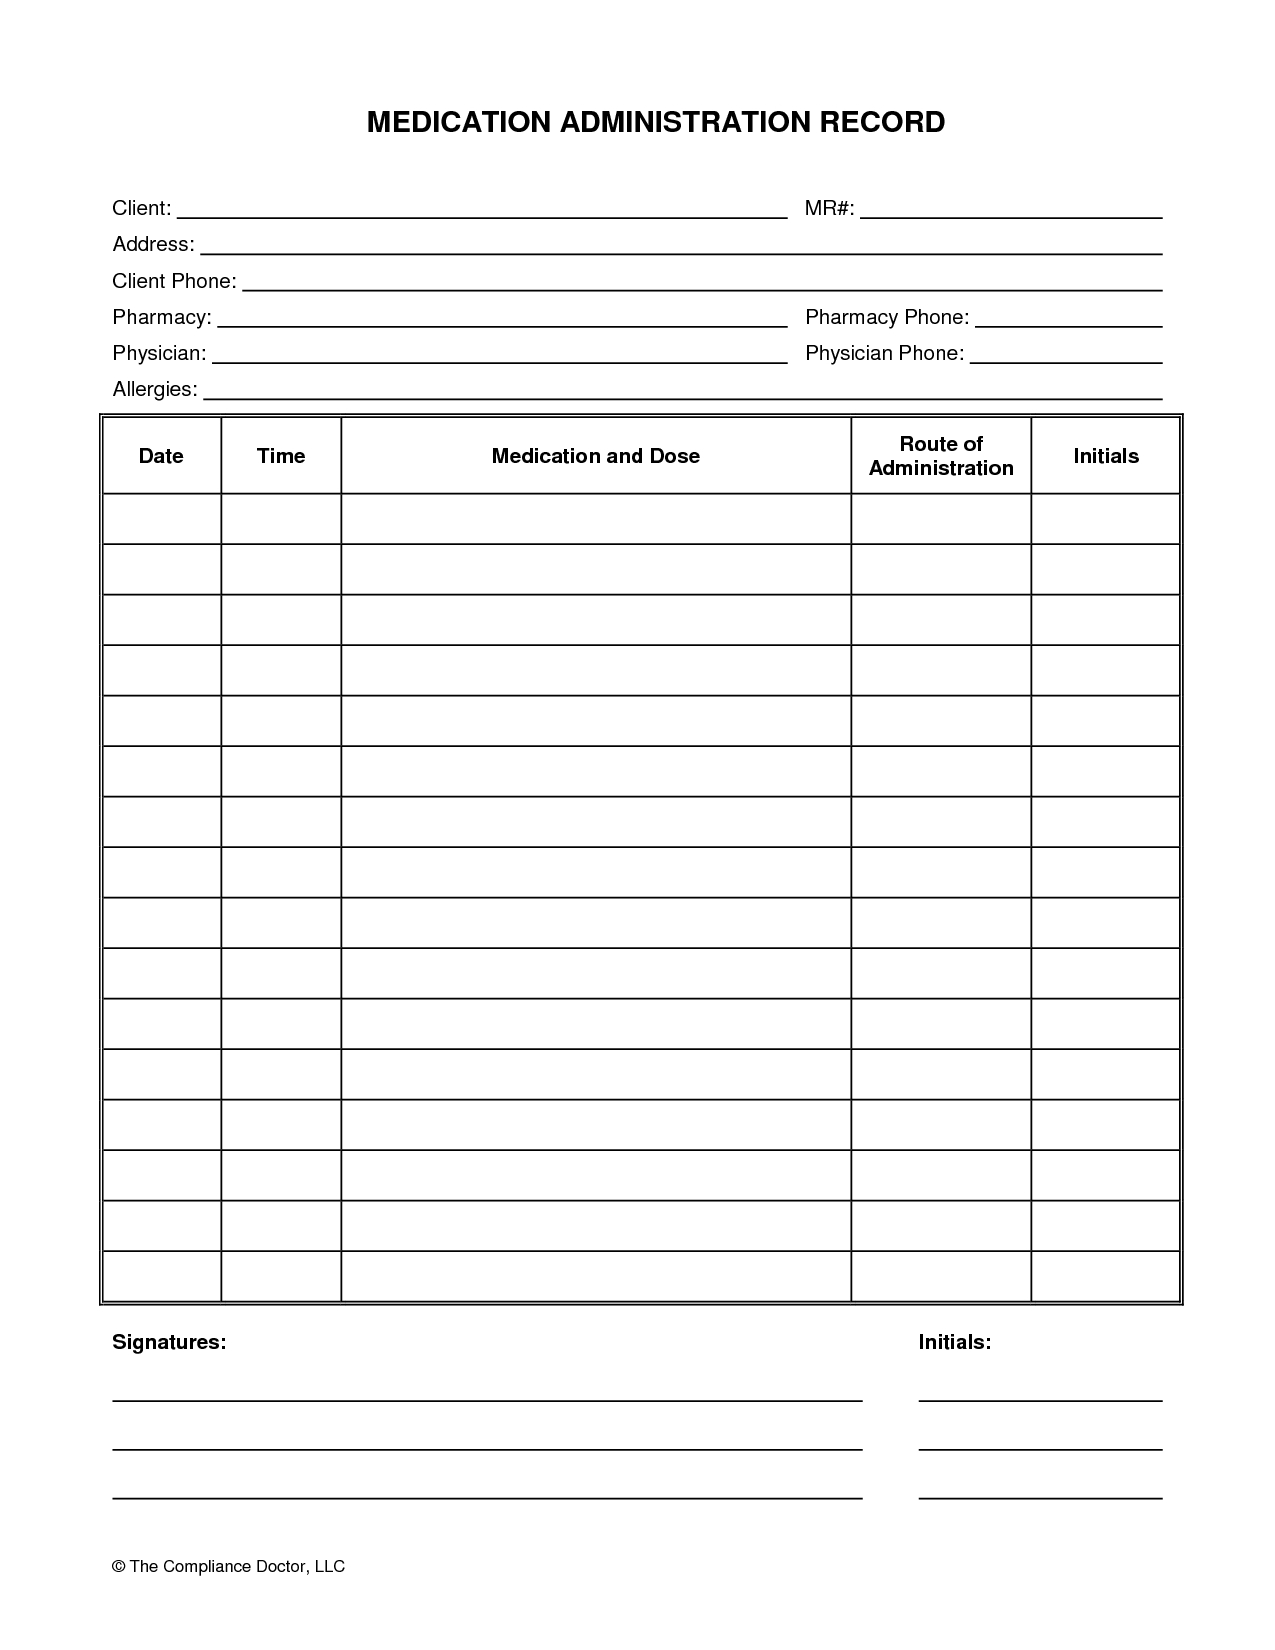 Medication Administration Record Form | Organization | Medication - Free Printable Medication List Template